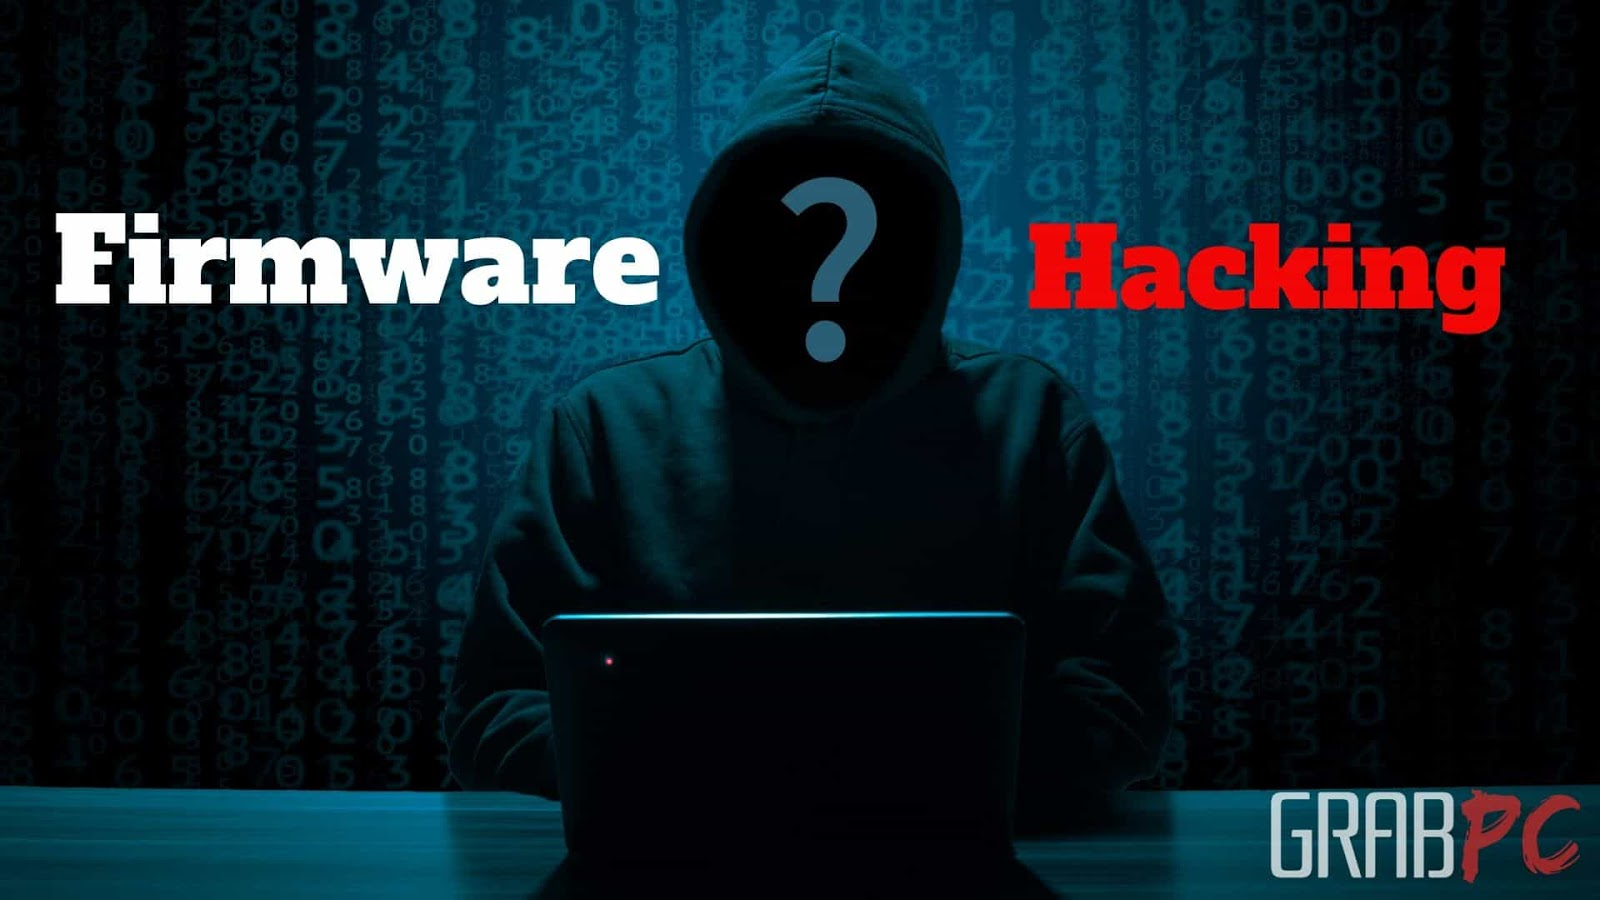 Firmware hacking kya hai